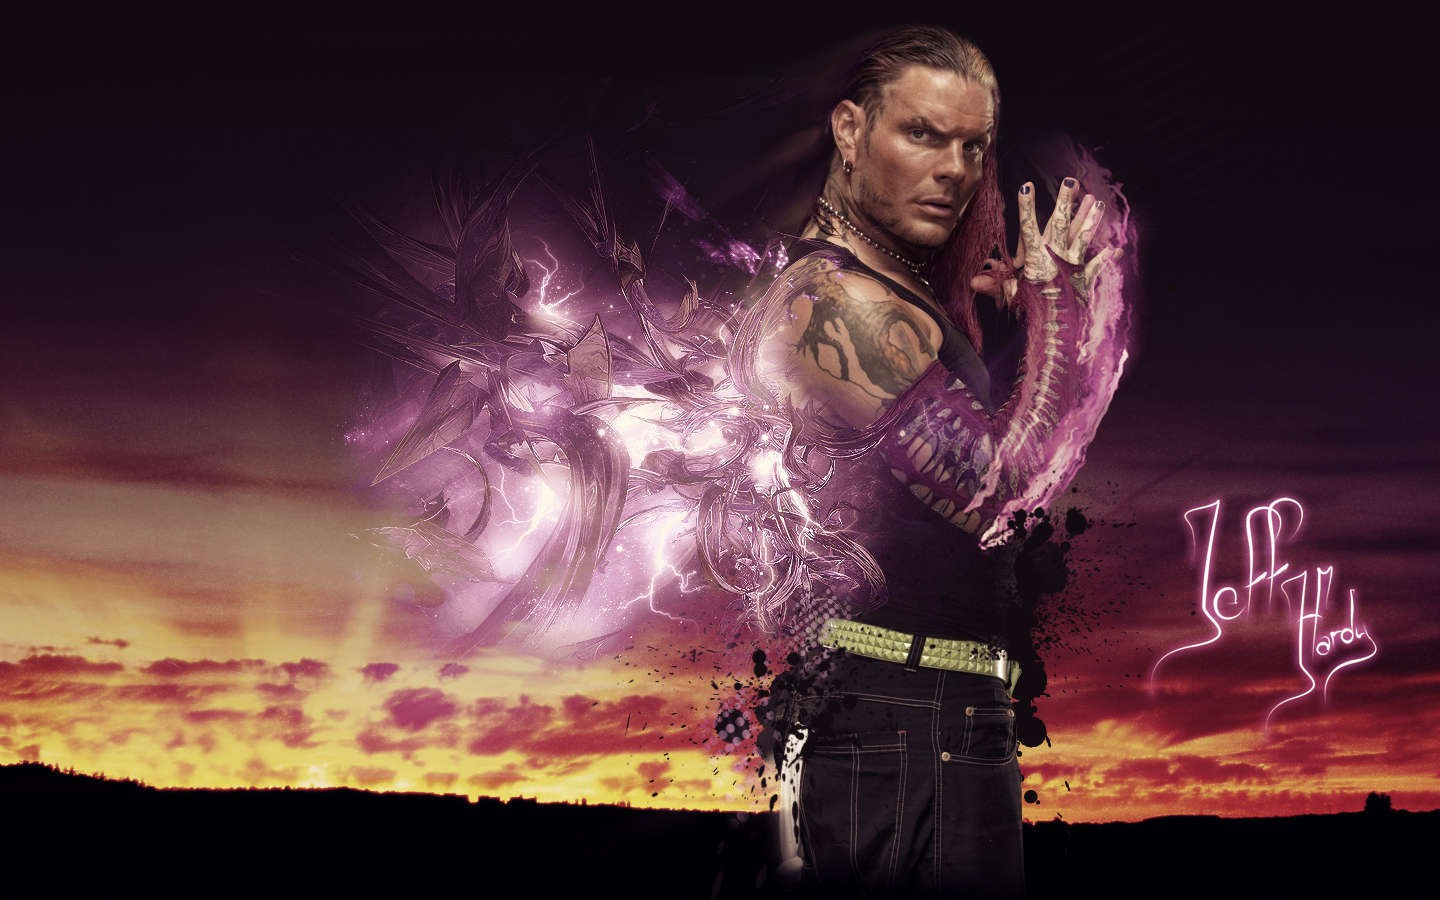 Jeff Hardy Cool Wwe Superstar 3d Wallpaper Hd Desktop